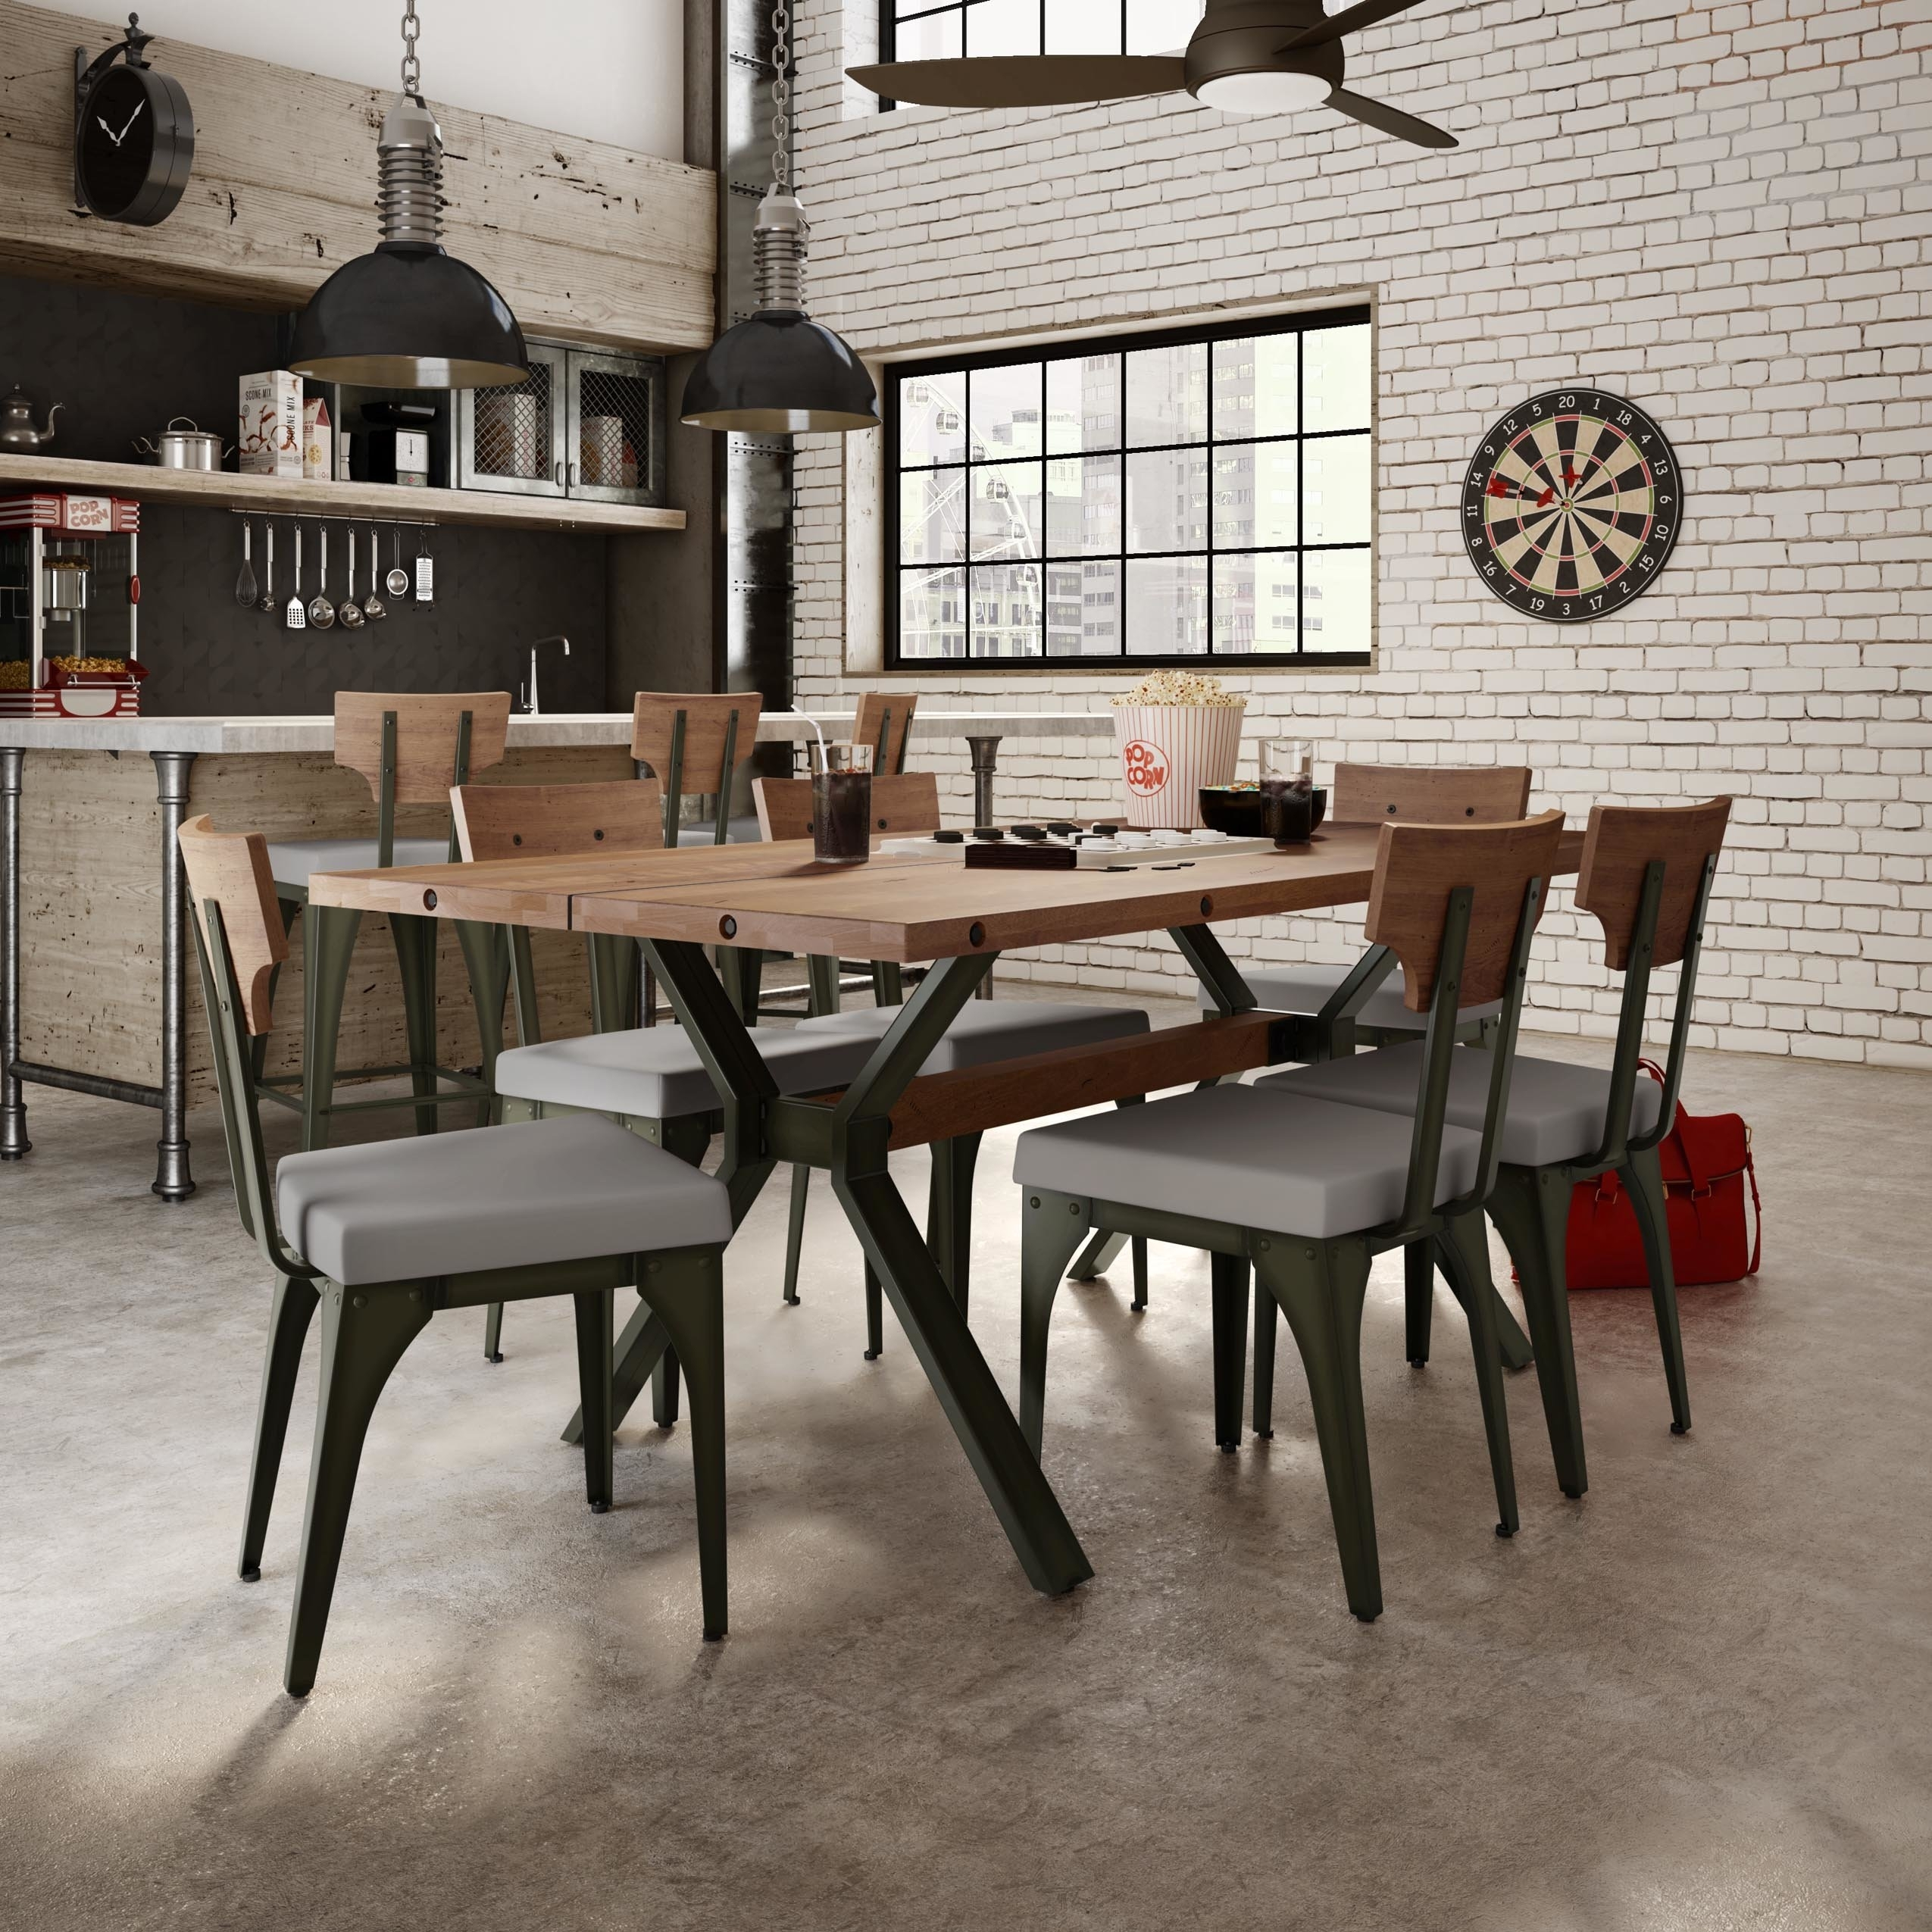 17 Stories Darcelle 7 Piece Industrial Dining Set | Wayfair Inside Most Up To Date Laurent 5 Piece Round Dining Sets With Wood Chairs (View 14 of 20)